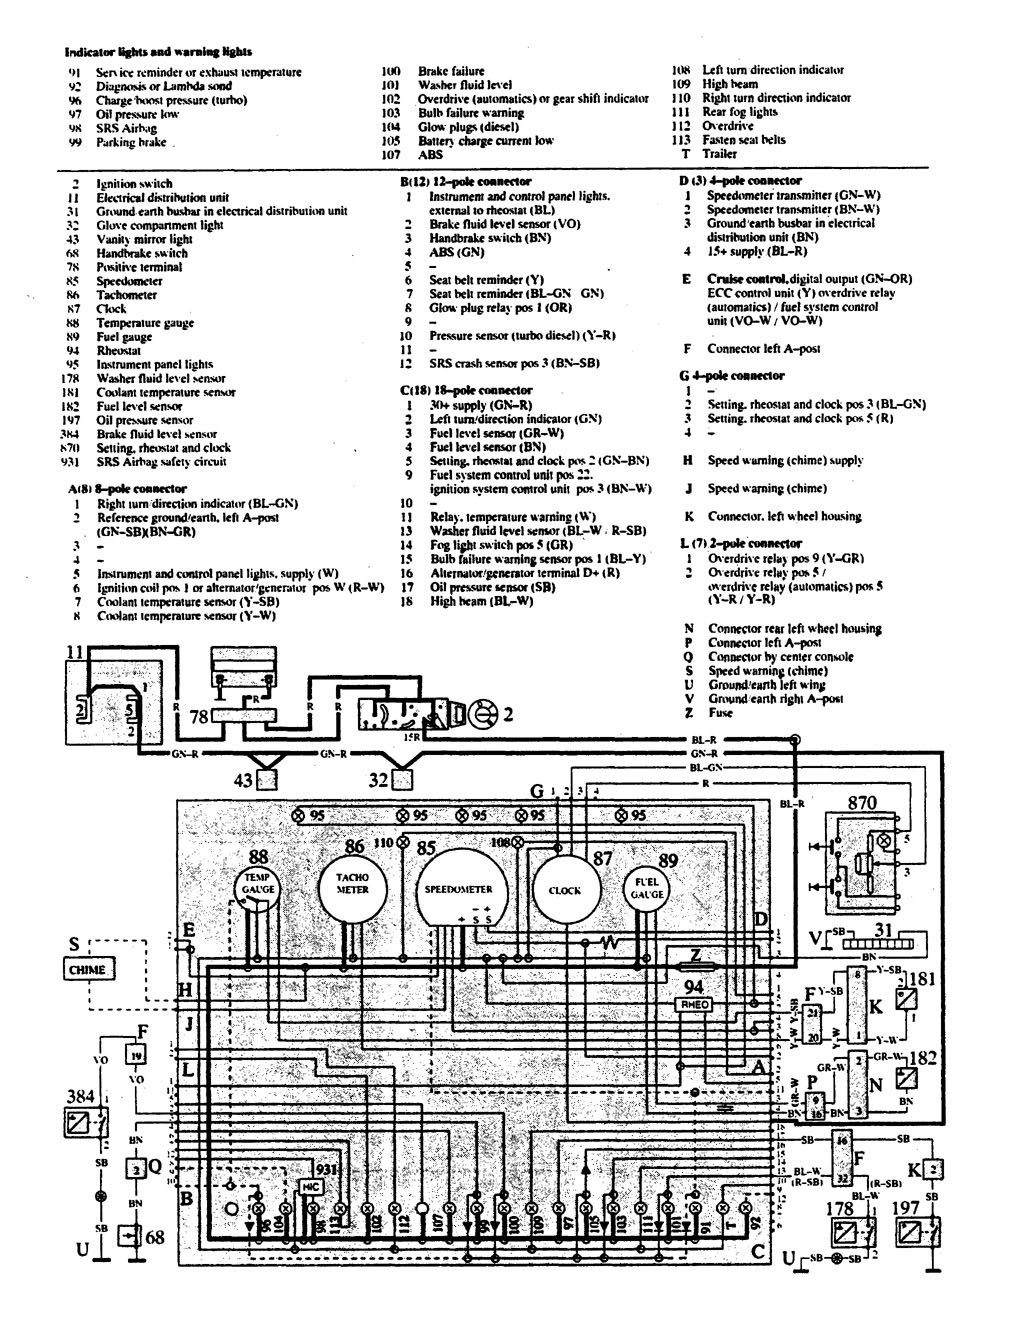 [SCHEMATICS_48DE]  Volvo 740 (1991) - wiring diagrams - instrumentation - Carknowledge.info | 1991 Volvo 740 Wiring Diagrams |  | Carknowledge.info